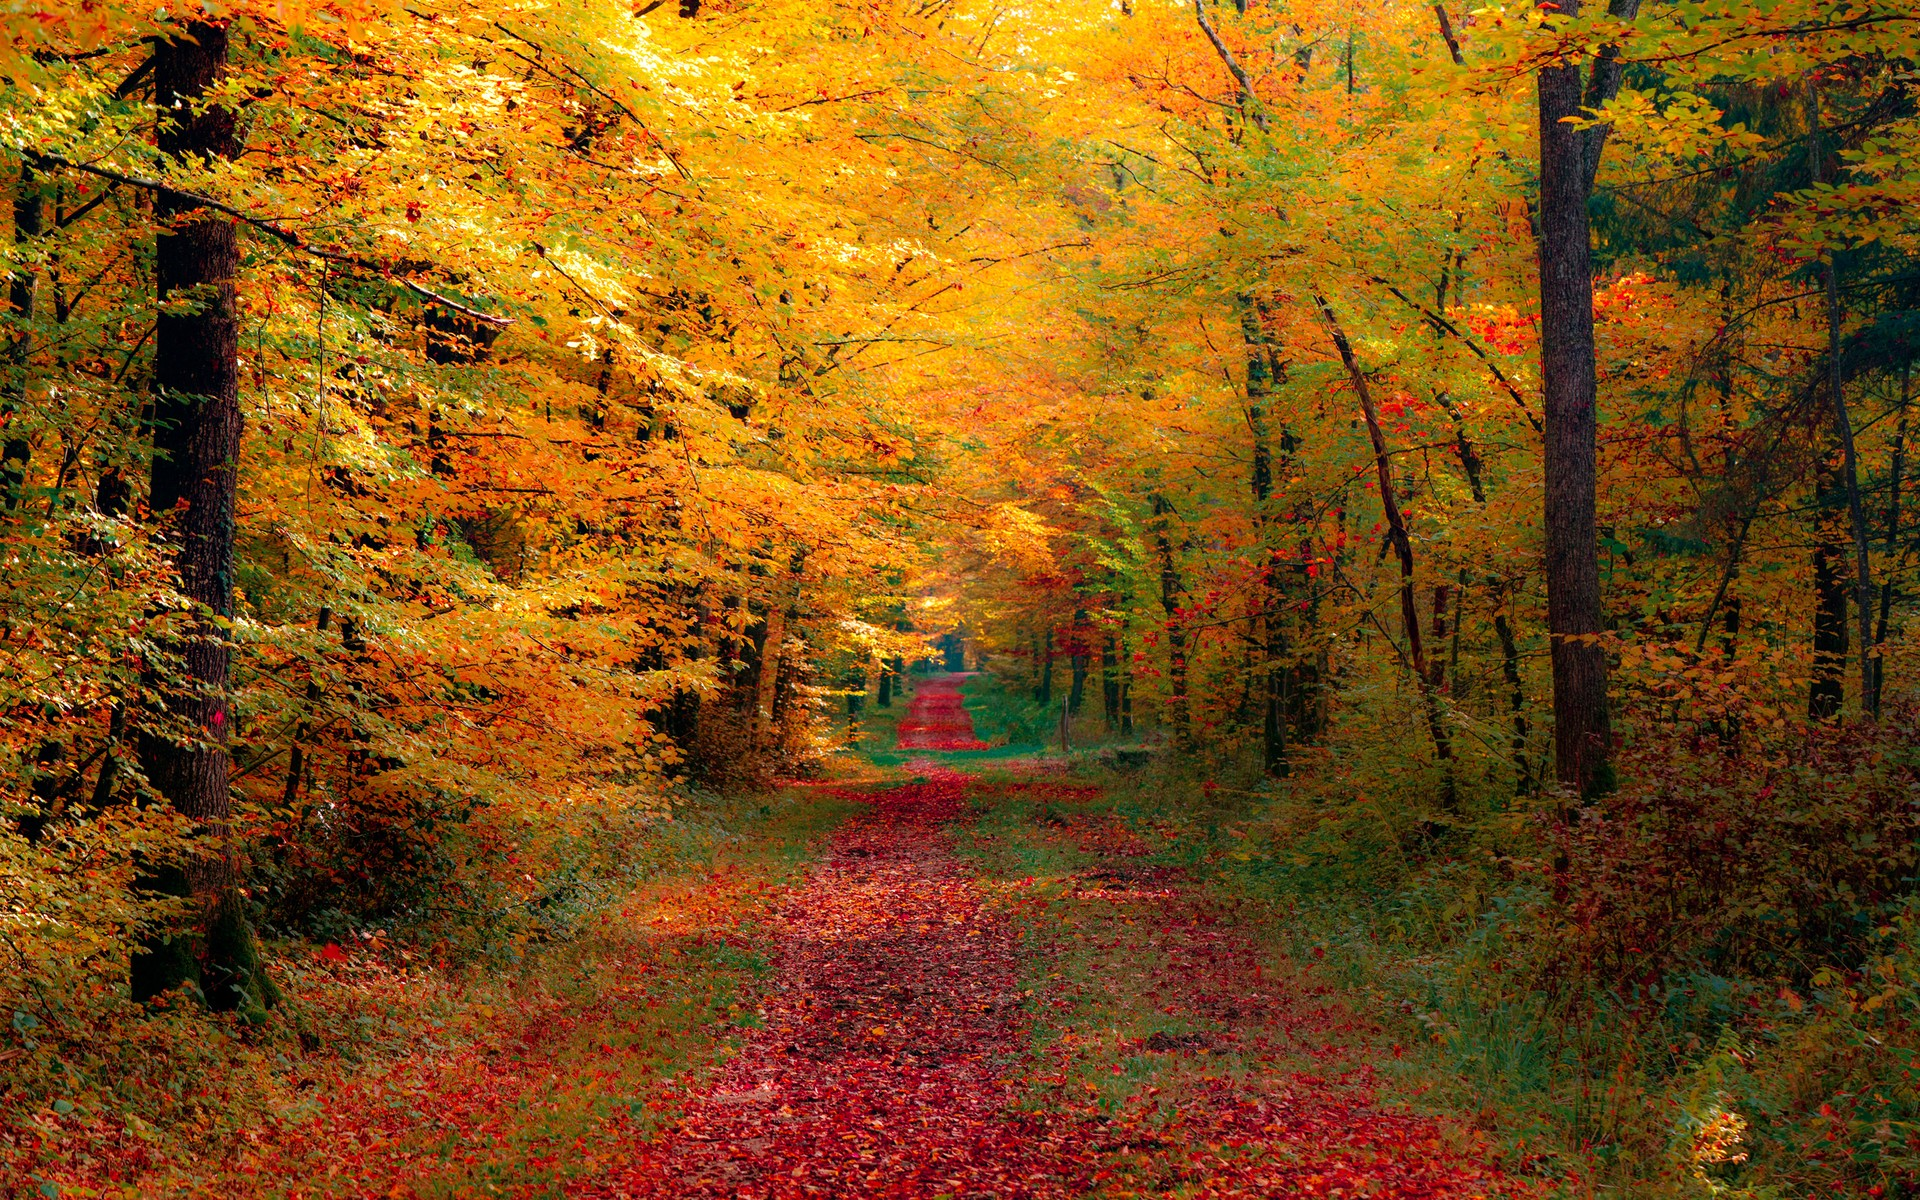 Autumn Forest wallpapers | Autumn Forest stock photos